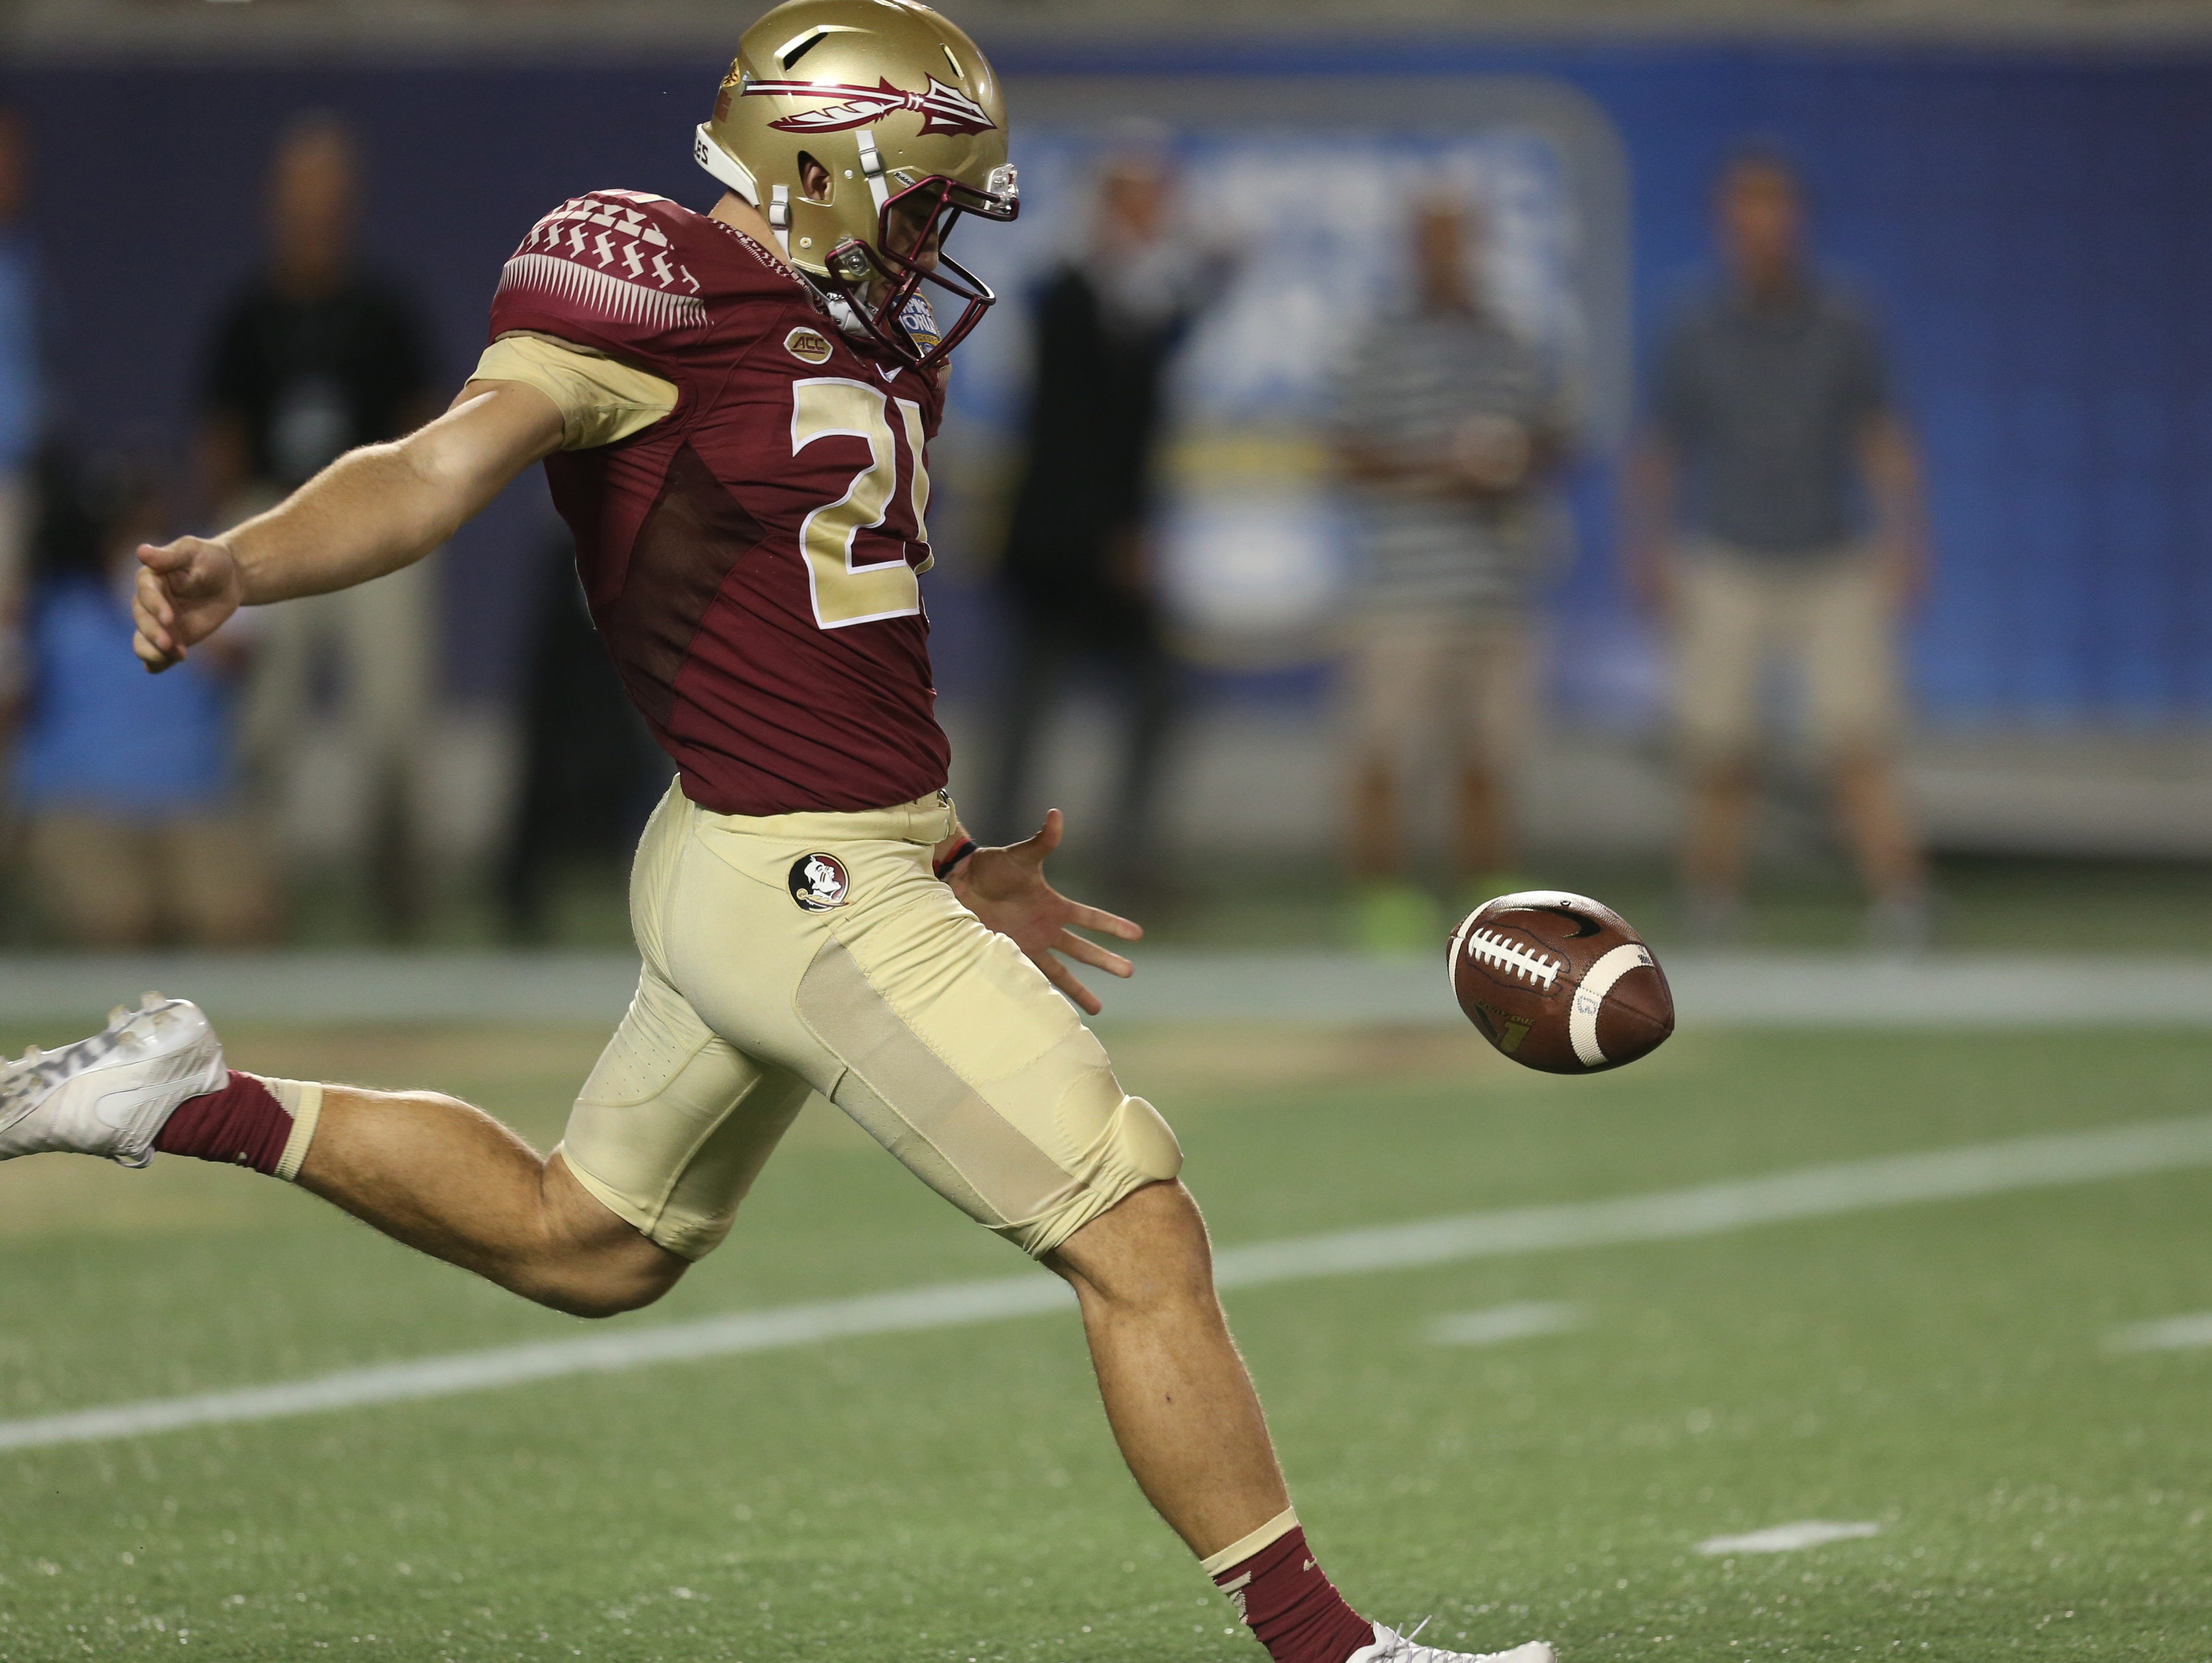 FSU's Logan Tyler punts the ball during a game against Ole Miss at Camping World Stadium on Monday, Sept. 5, 2016.